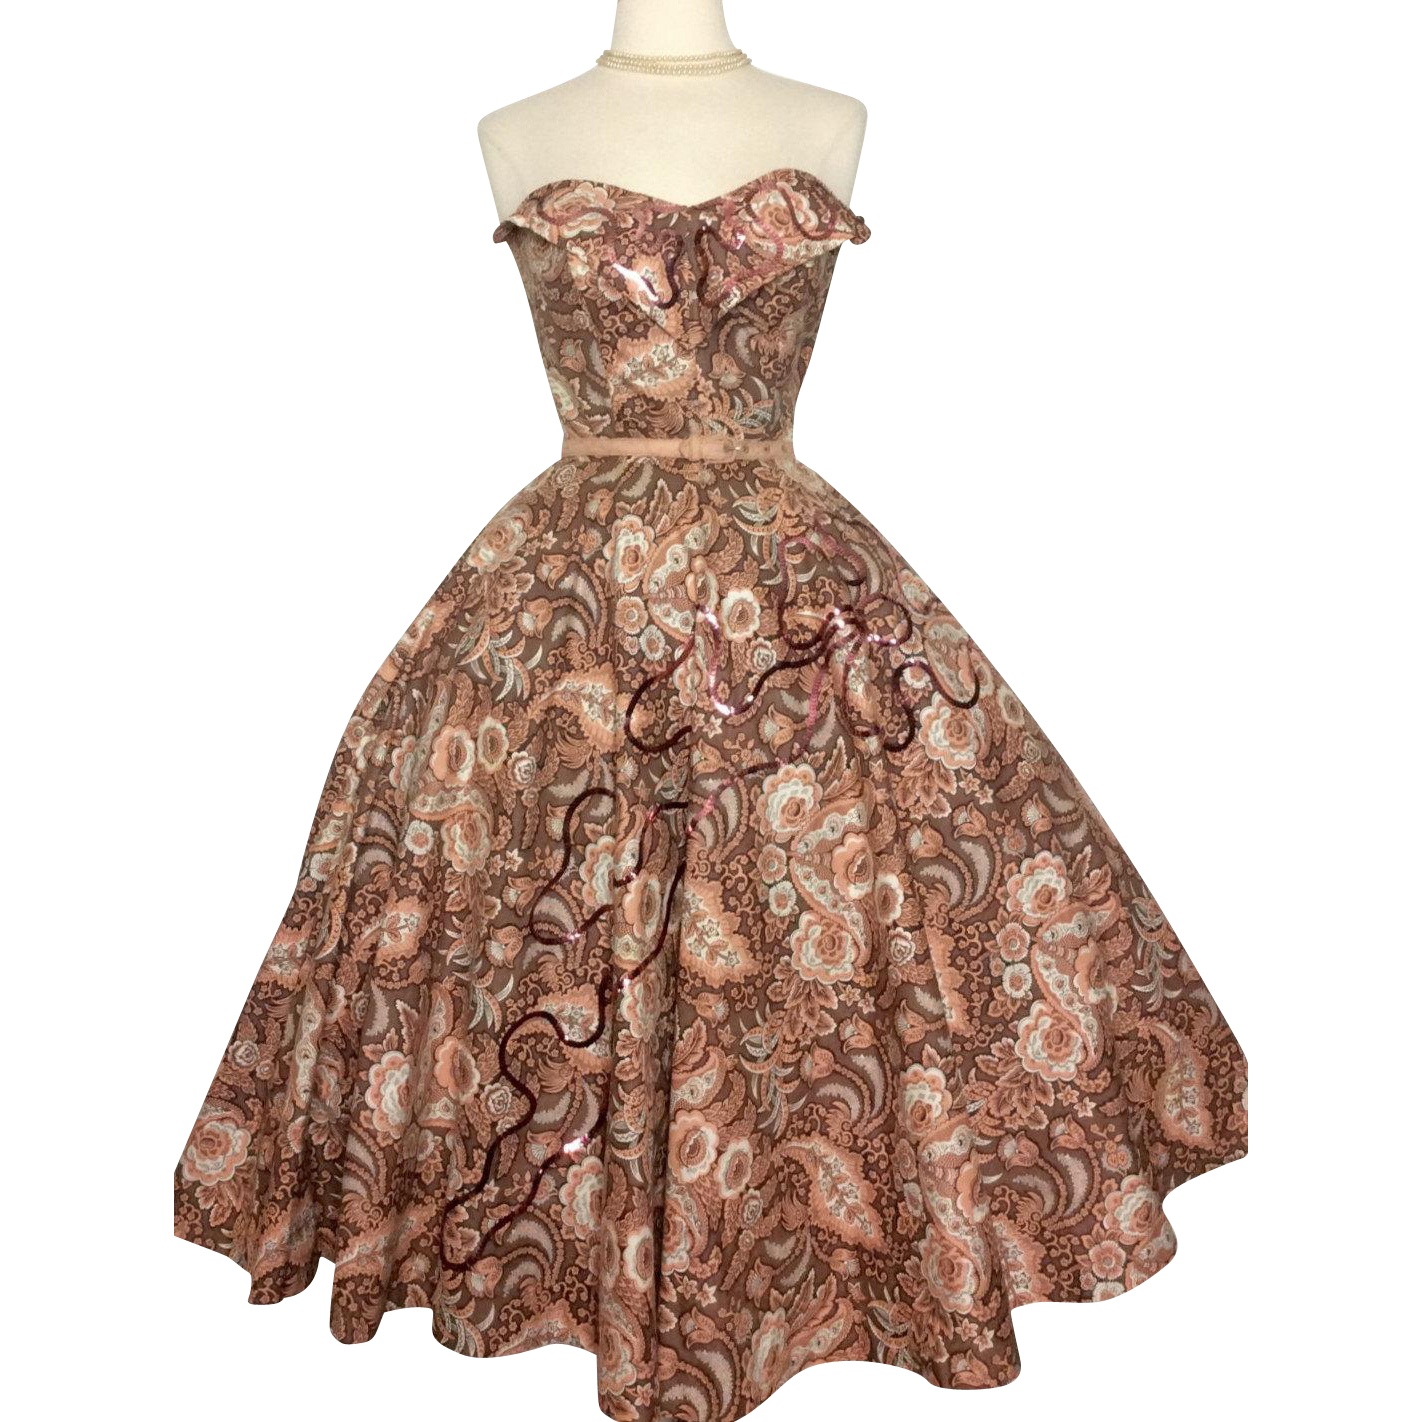 Vintage 1950s Dress//50s Strapless Dress/